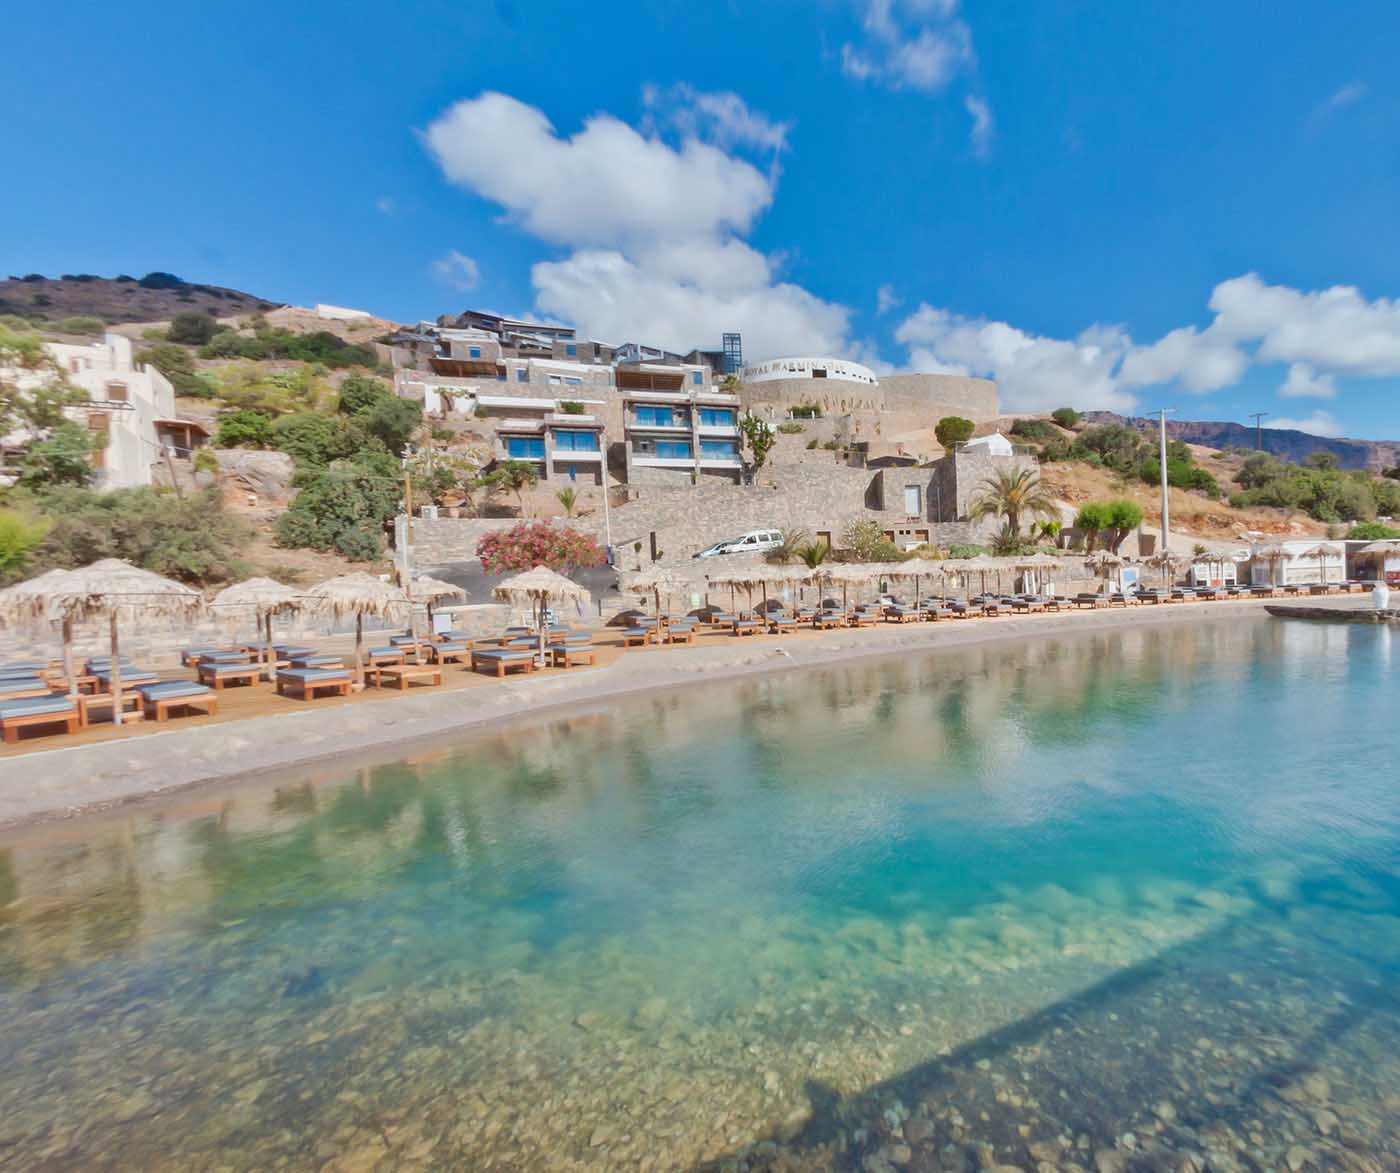 Greece hotels & resorts, 50% discount for early bookings, Greece, Europe